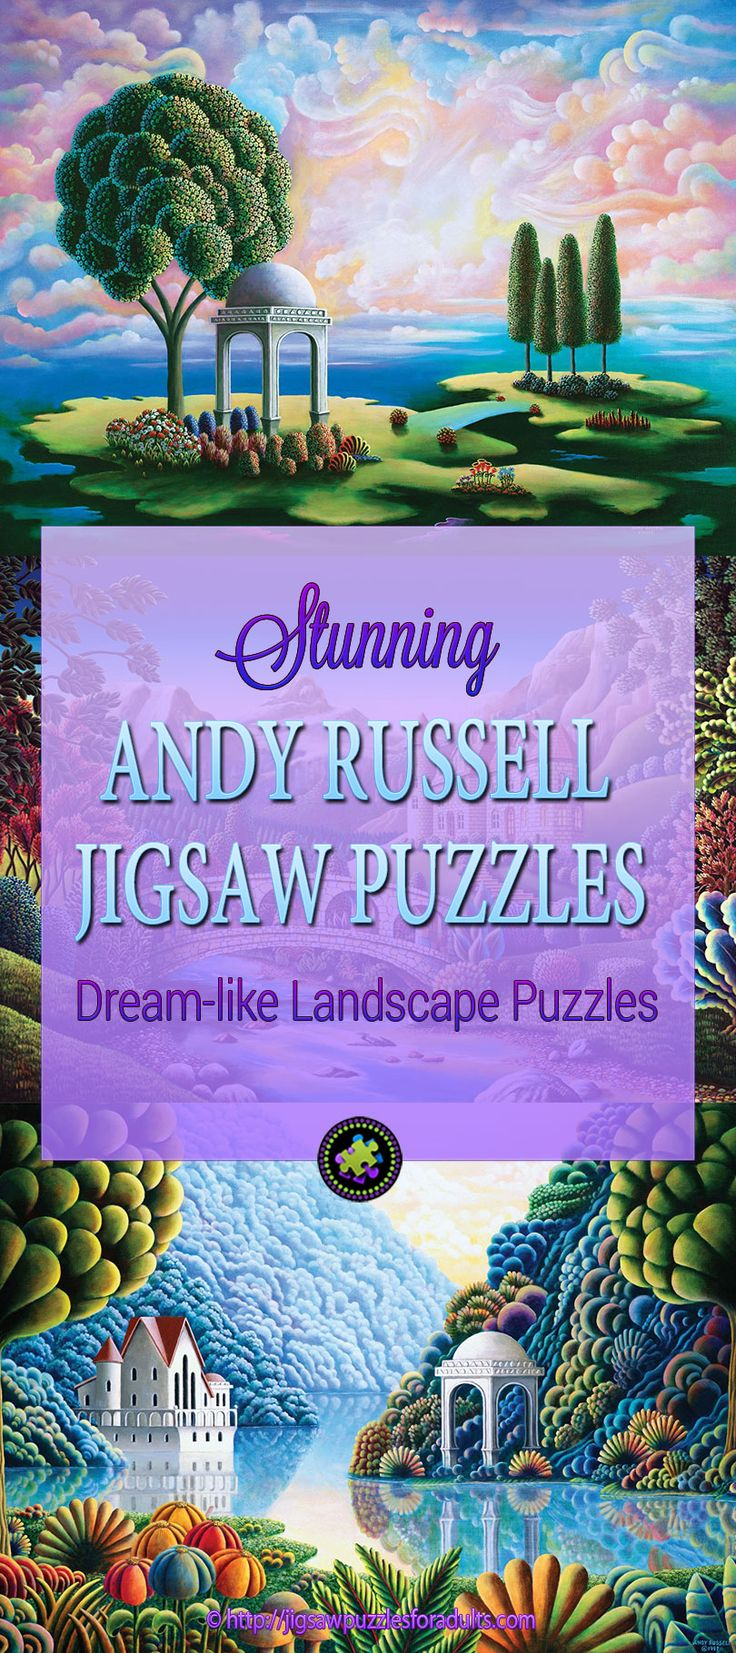 If you haven't yet heard of Andy Russell Puzzles you really must treat yourself to one of his beautiful dream-like landscape jigsaw puzzles from his own collection of profession artwork. You will love working on one or two or maybe all of his jigsaw puzzles.